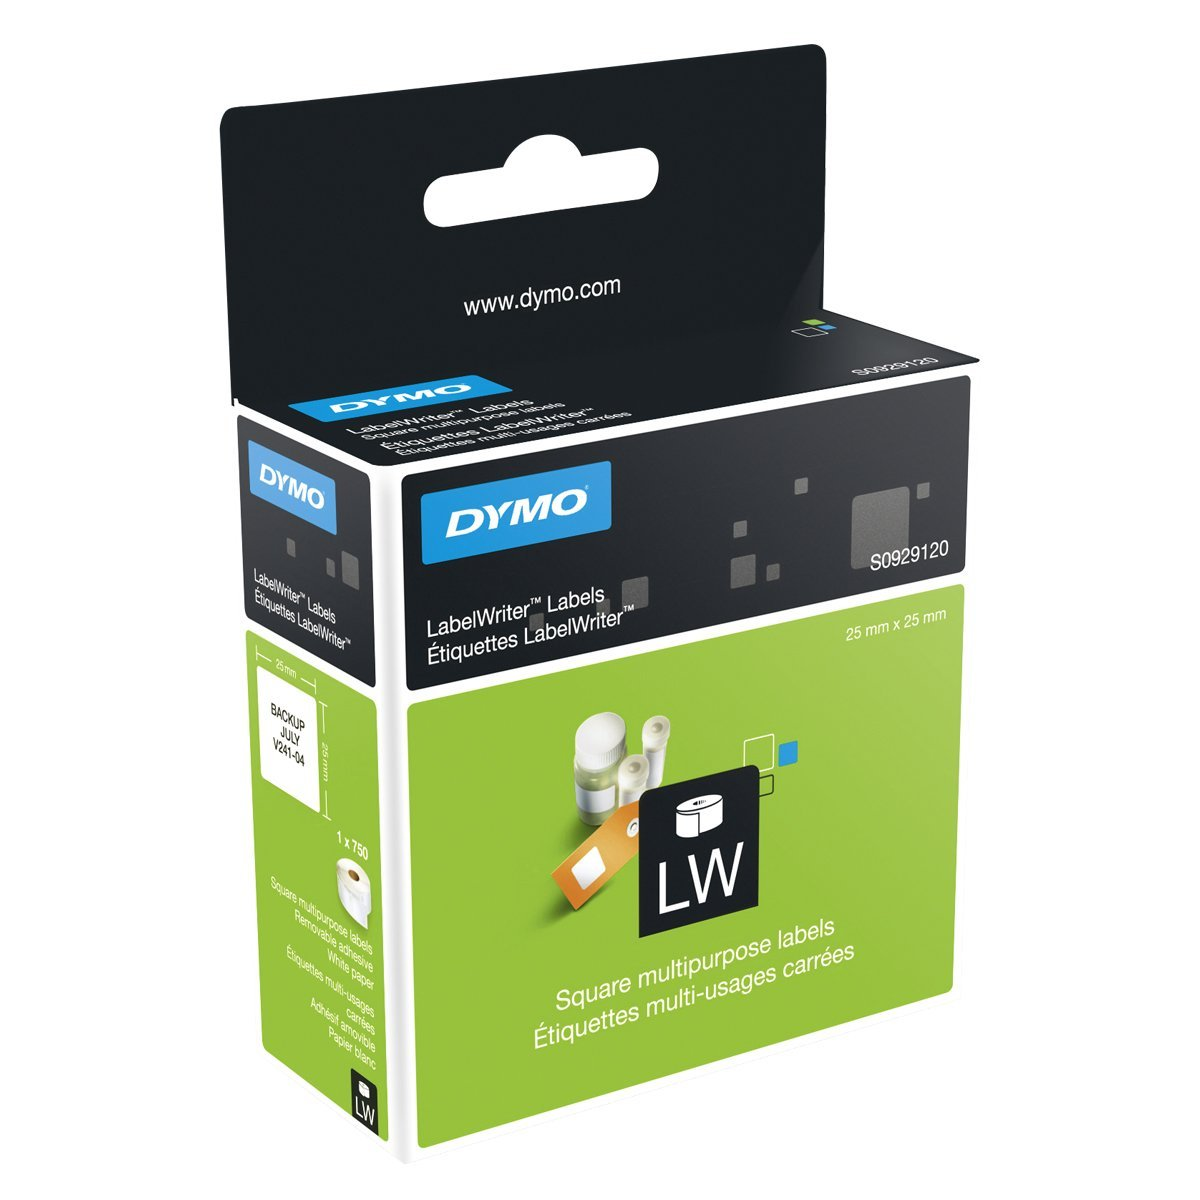 Dymo S0929120 LabelWriter Multi-Purpose Labels 25 mm x 25 mm - Black on White (roll)